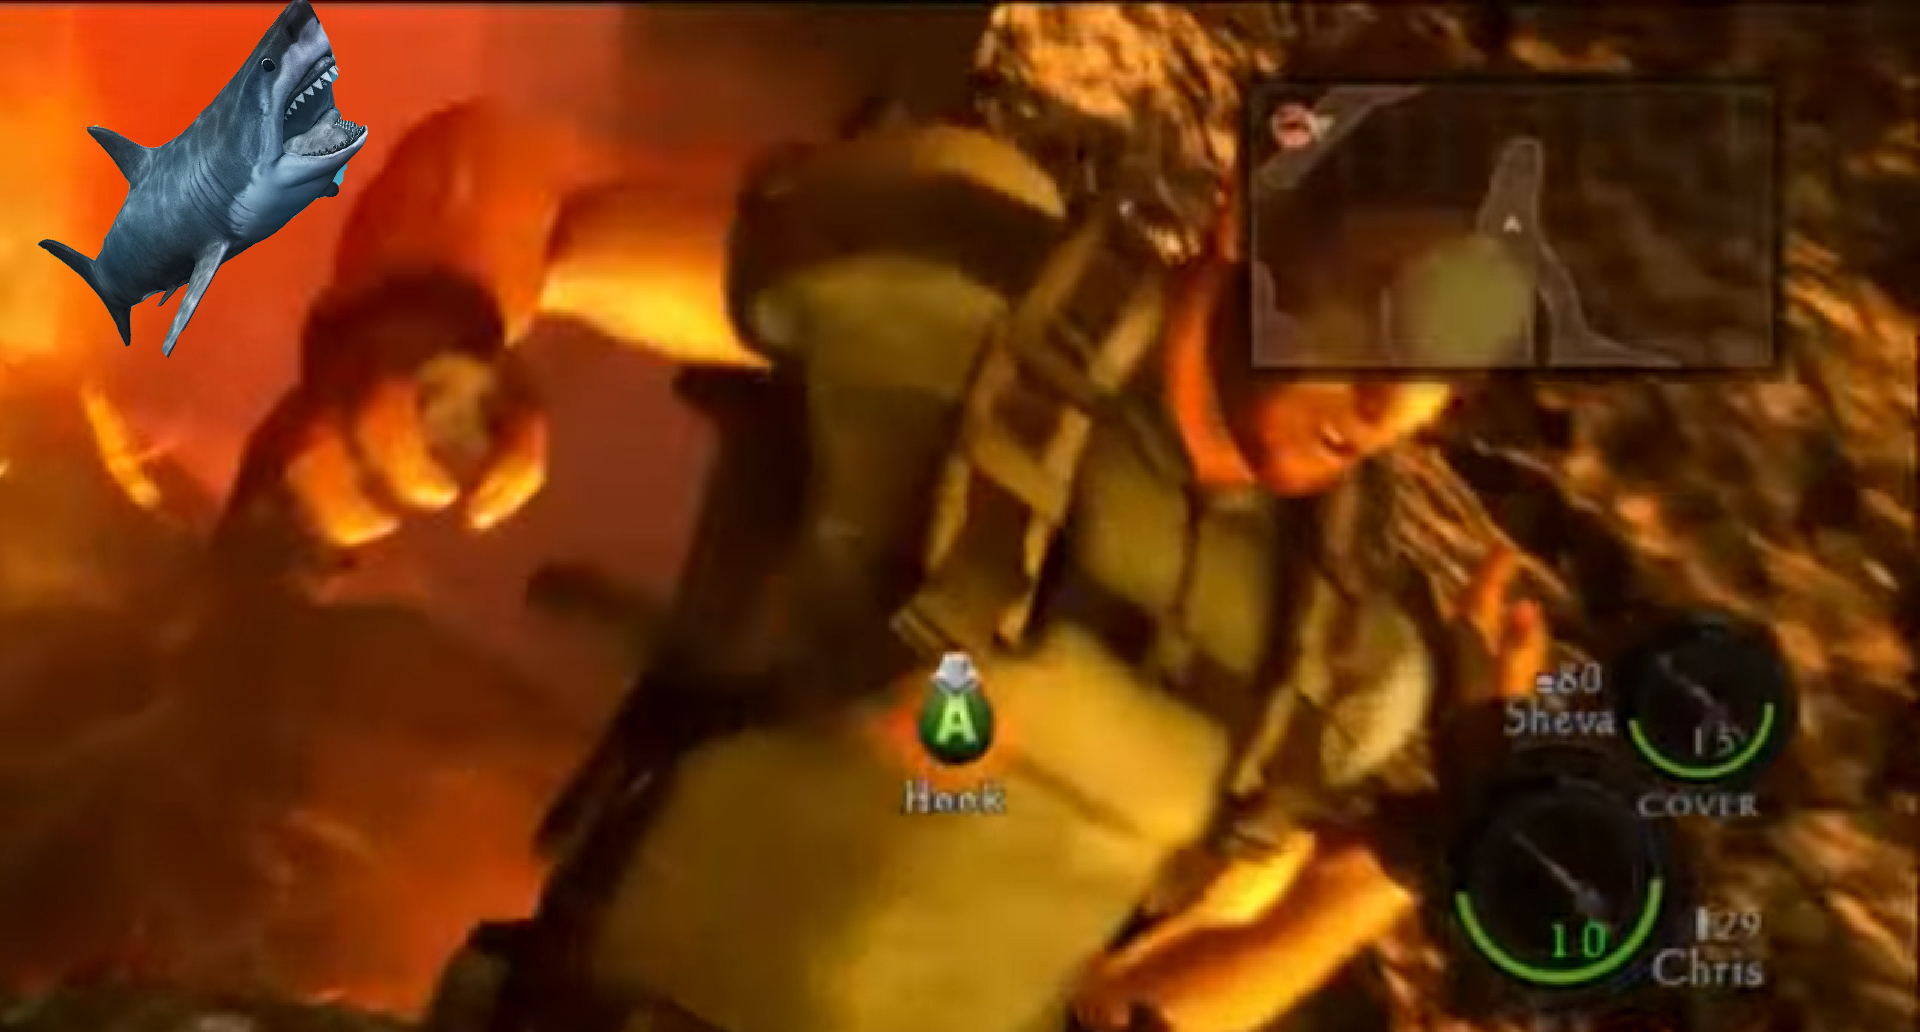 The Times Resident Evil Totally Jumped The Shark Games Revisited